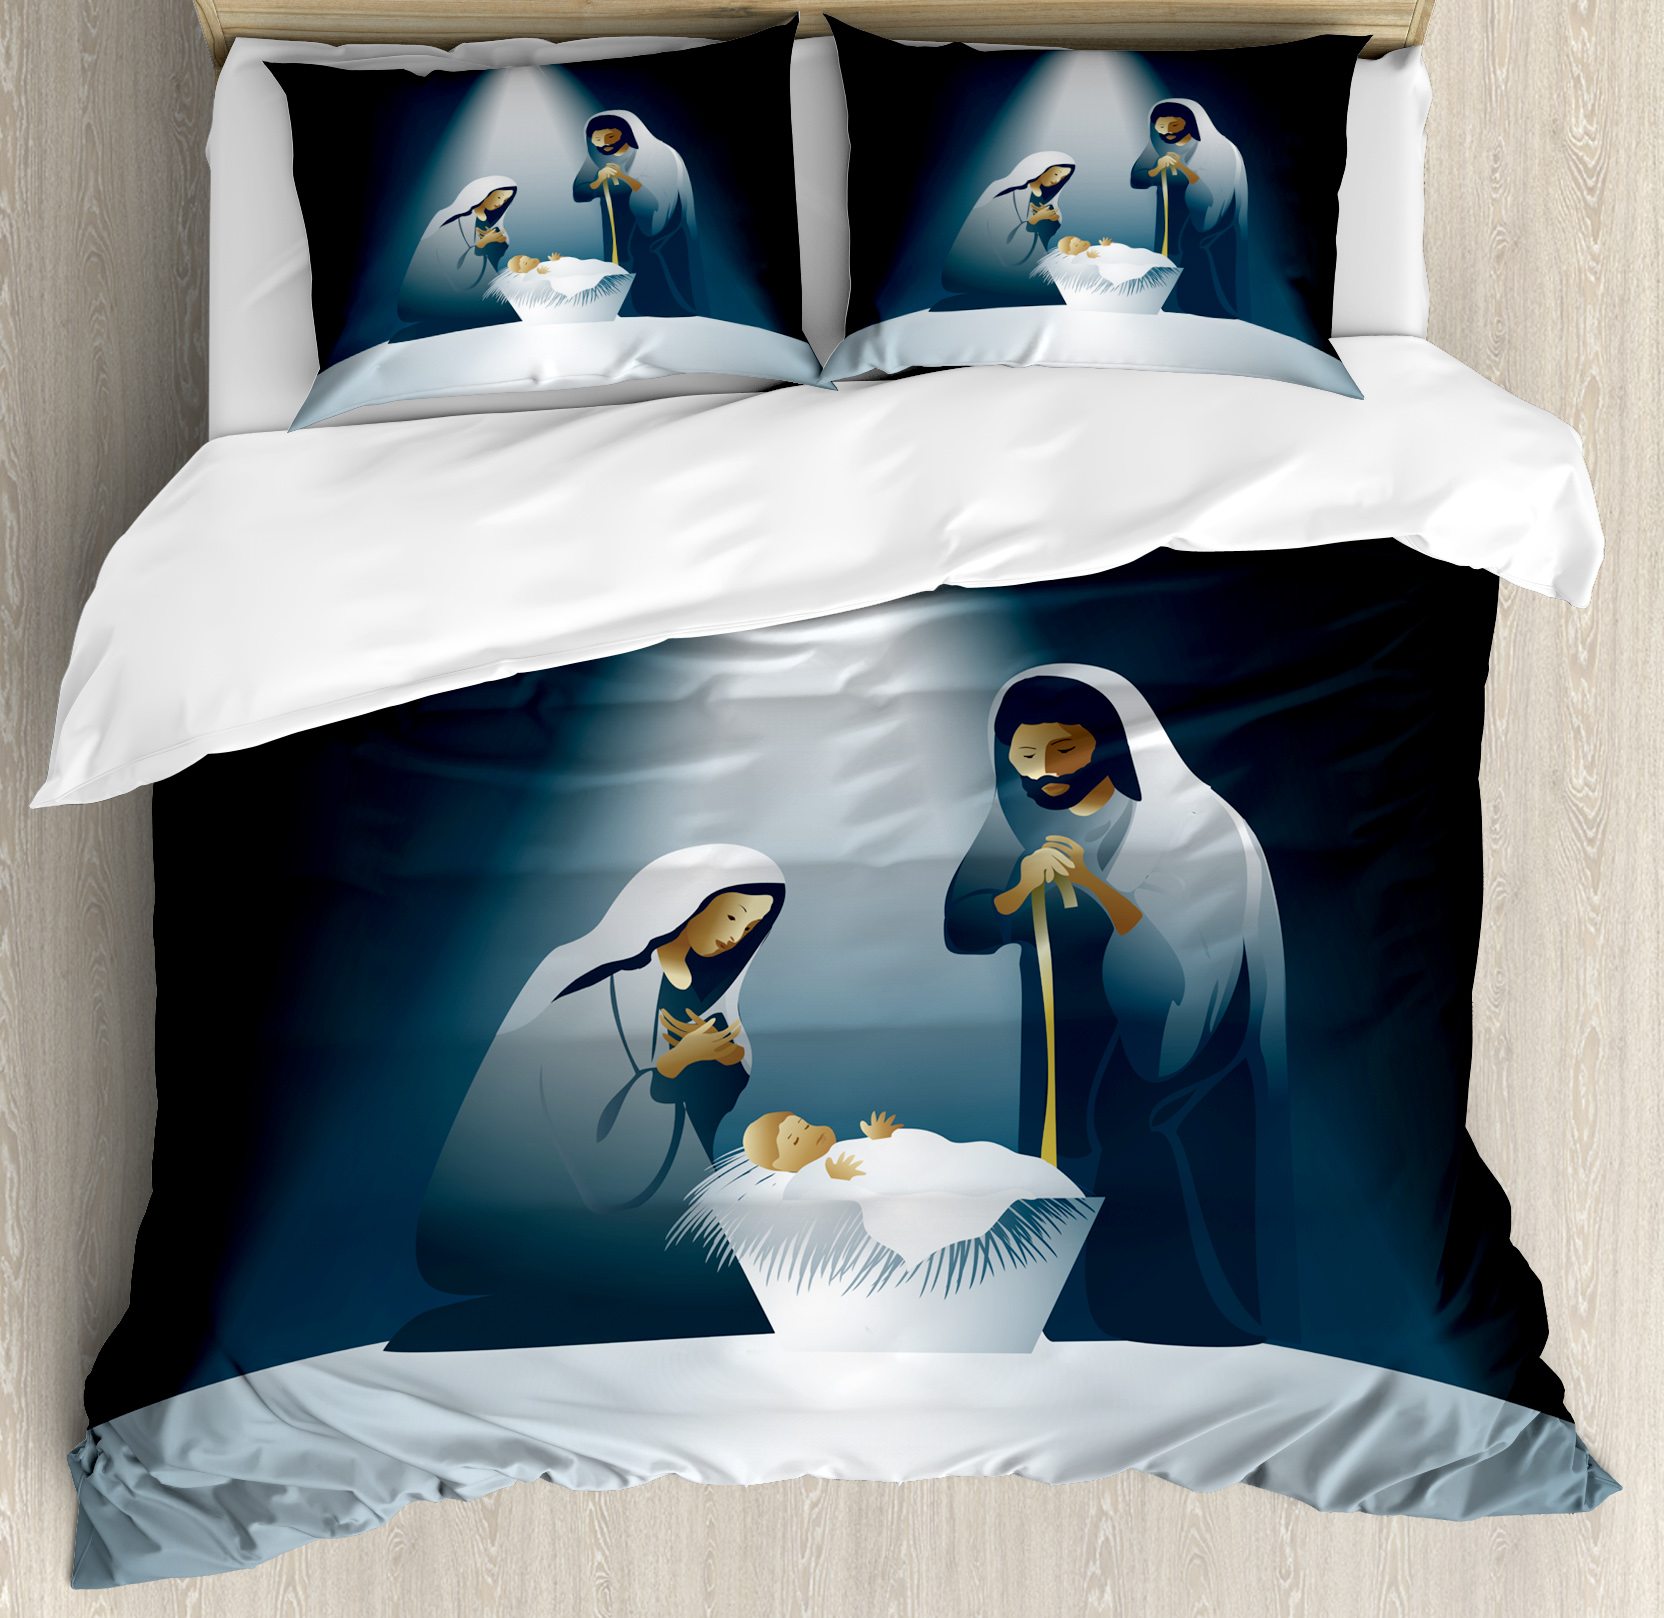 Religious King Size Duvet Cover Set, Xmas Nativity Scene with Holy Family Maria Joseph Baby Child Star Winter, Decorative 3 Piece Bedding Set with 2 Pillow Shams, Black White Grey, by Ambesonne